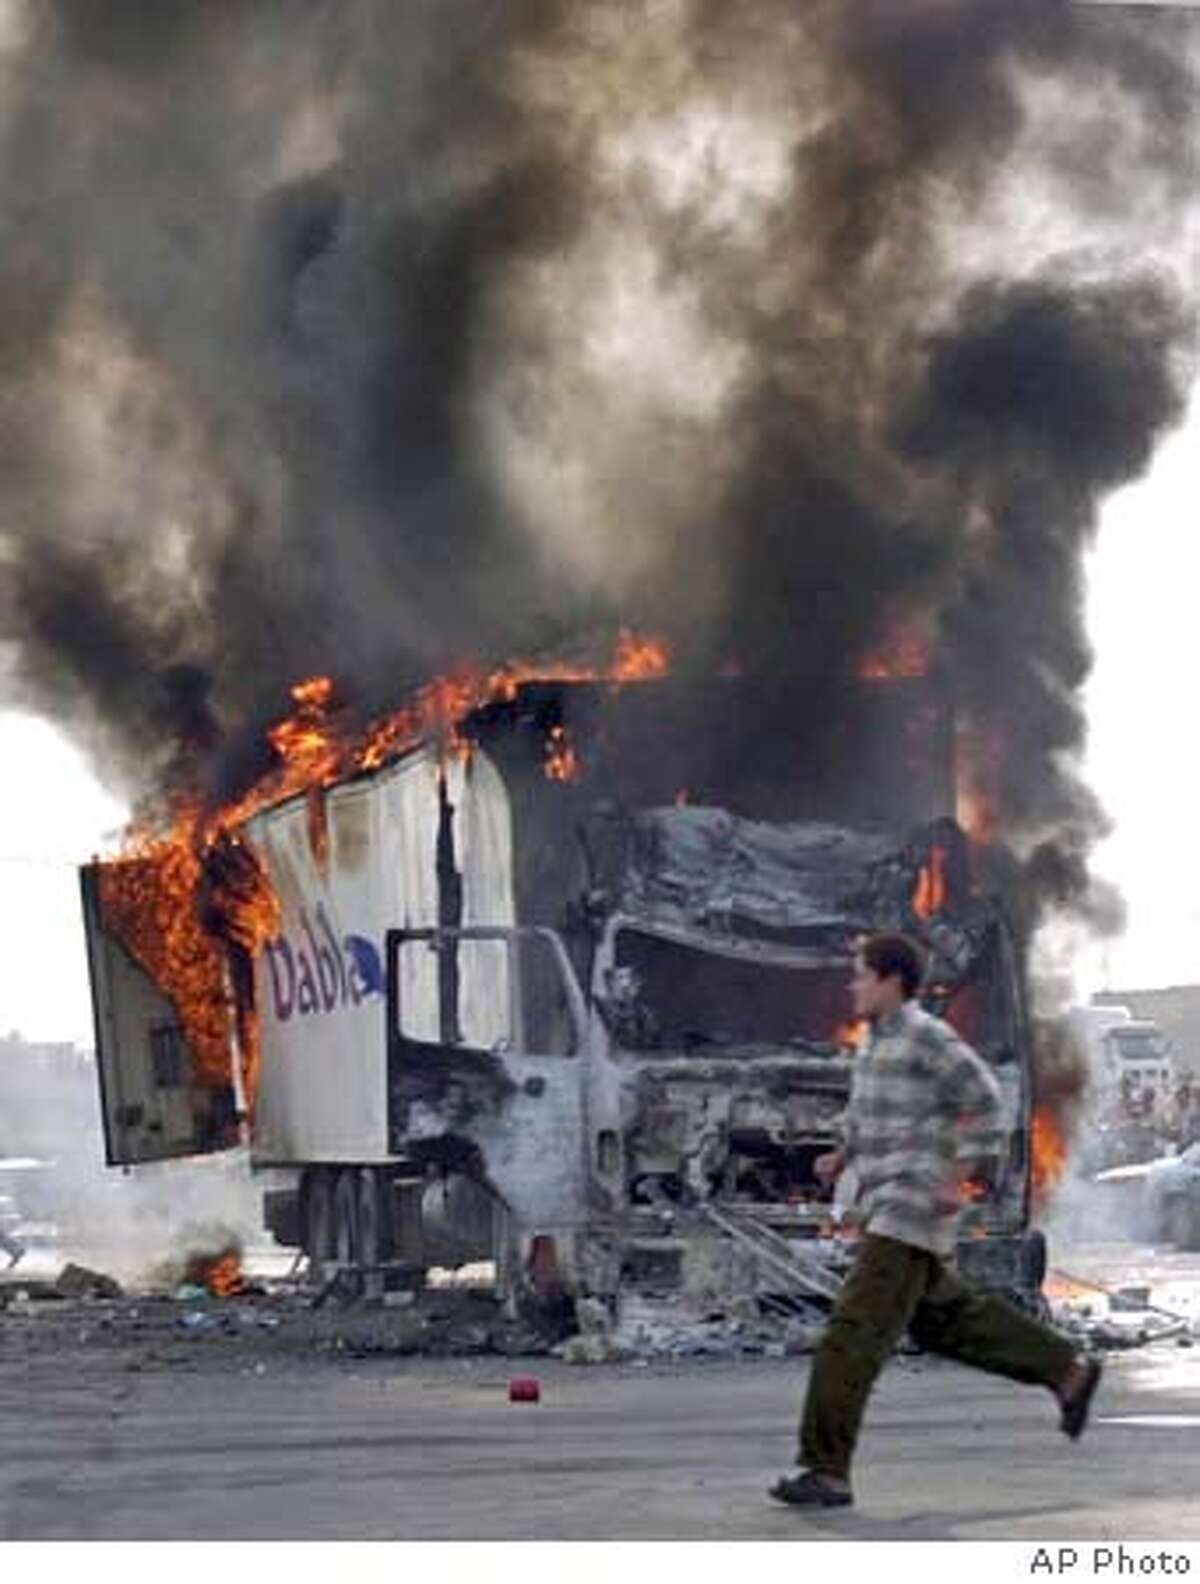 A Turkish truck burns after insurgents opened fire on it while it was carrying bottled water in the northern city of Mosul, Iraq Friday, Oct. 29, 2004. The driver was killed, according to Iraqi police.(AP Photo)